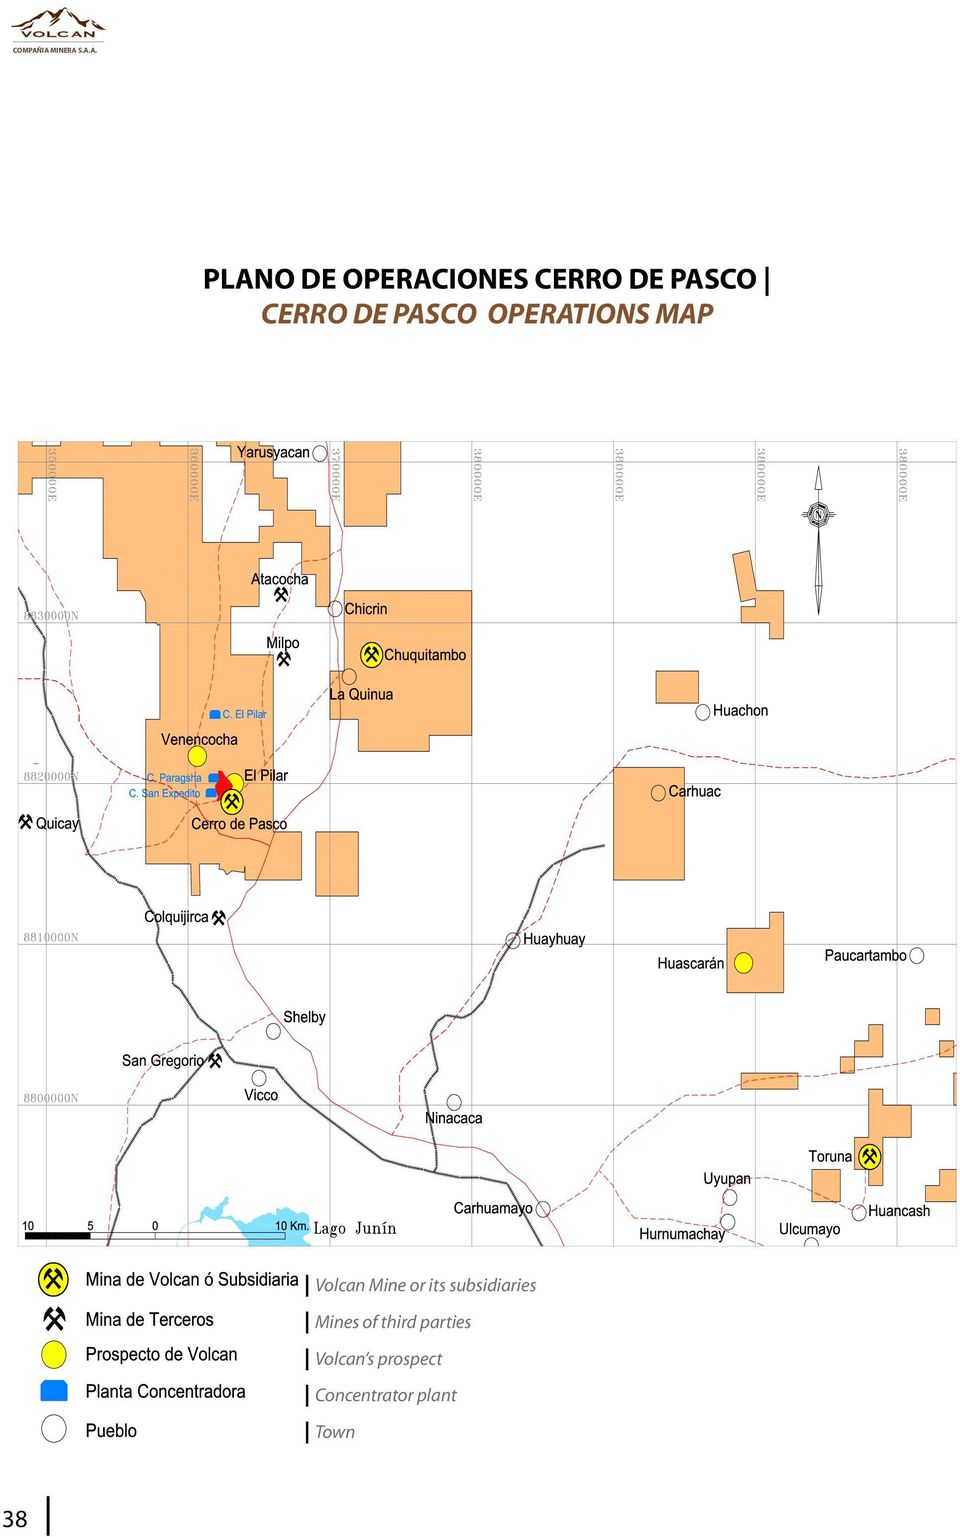 PASCO CERRO DE PASCO OPERATIONS MAP Volcan